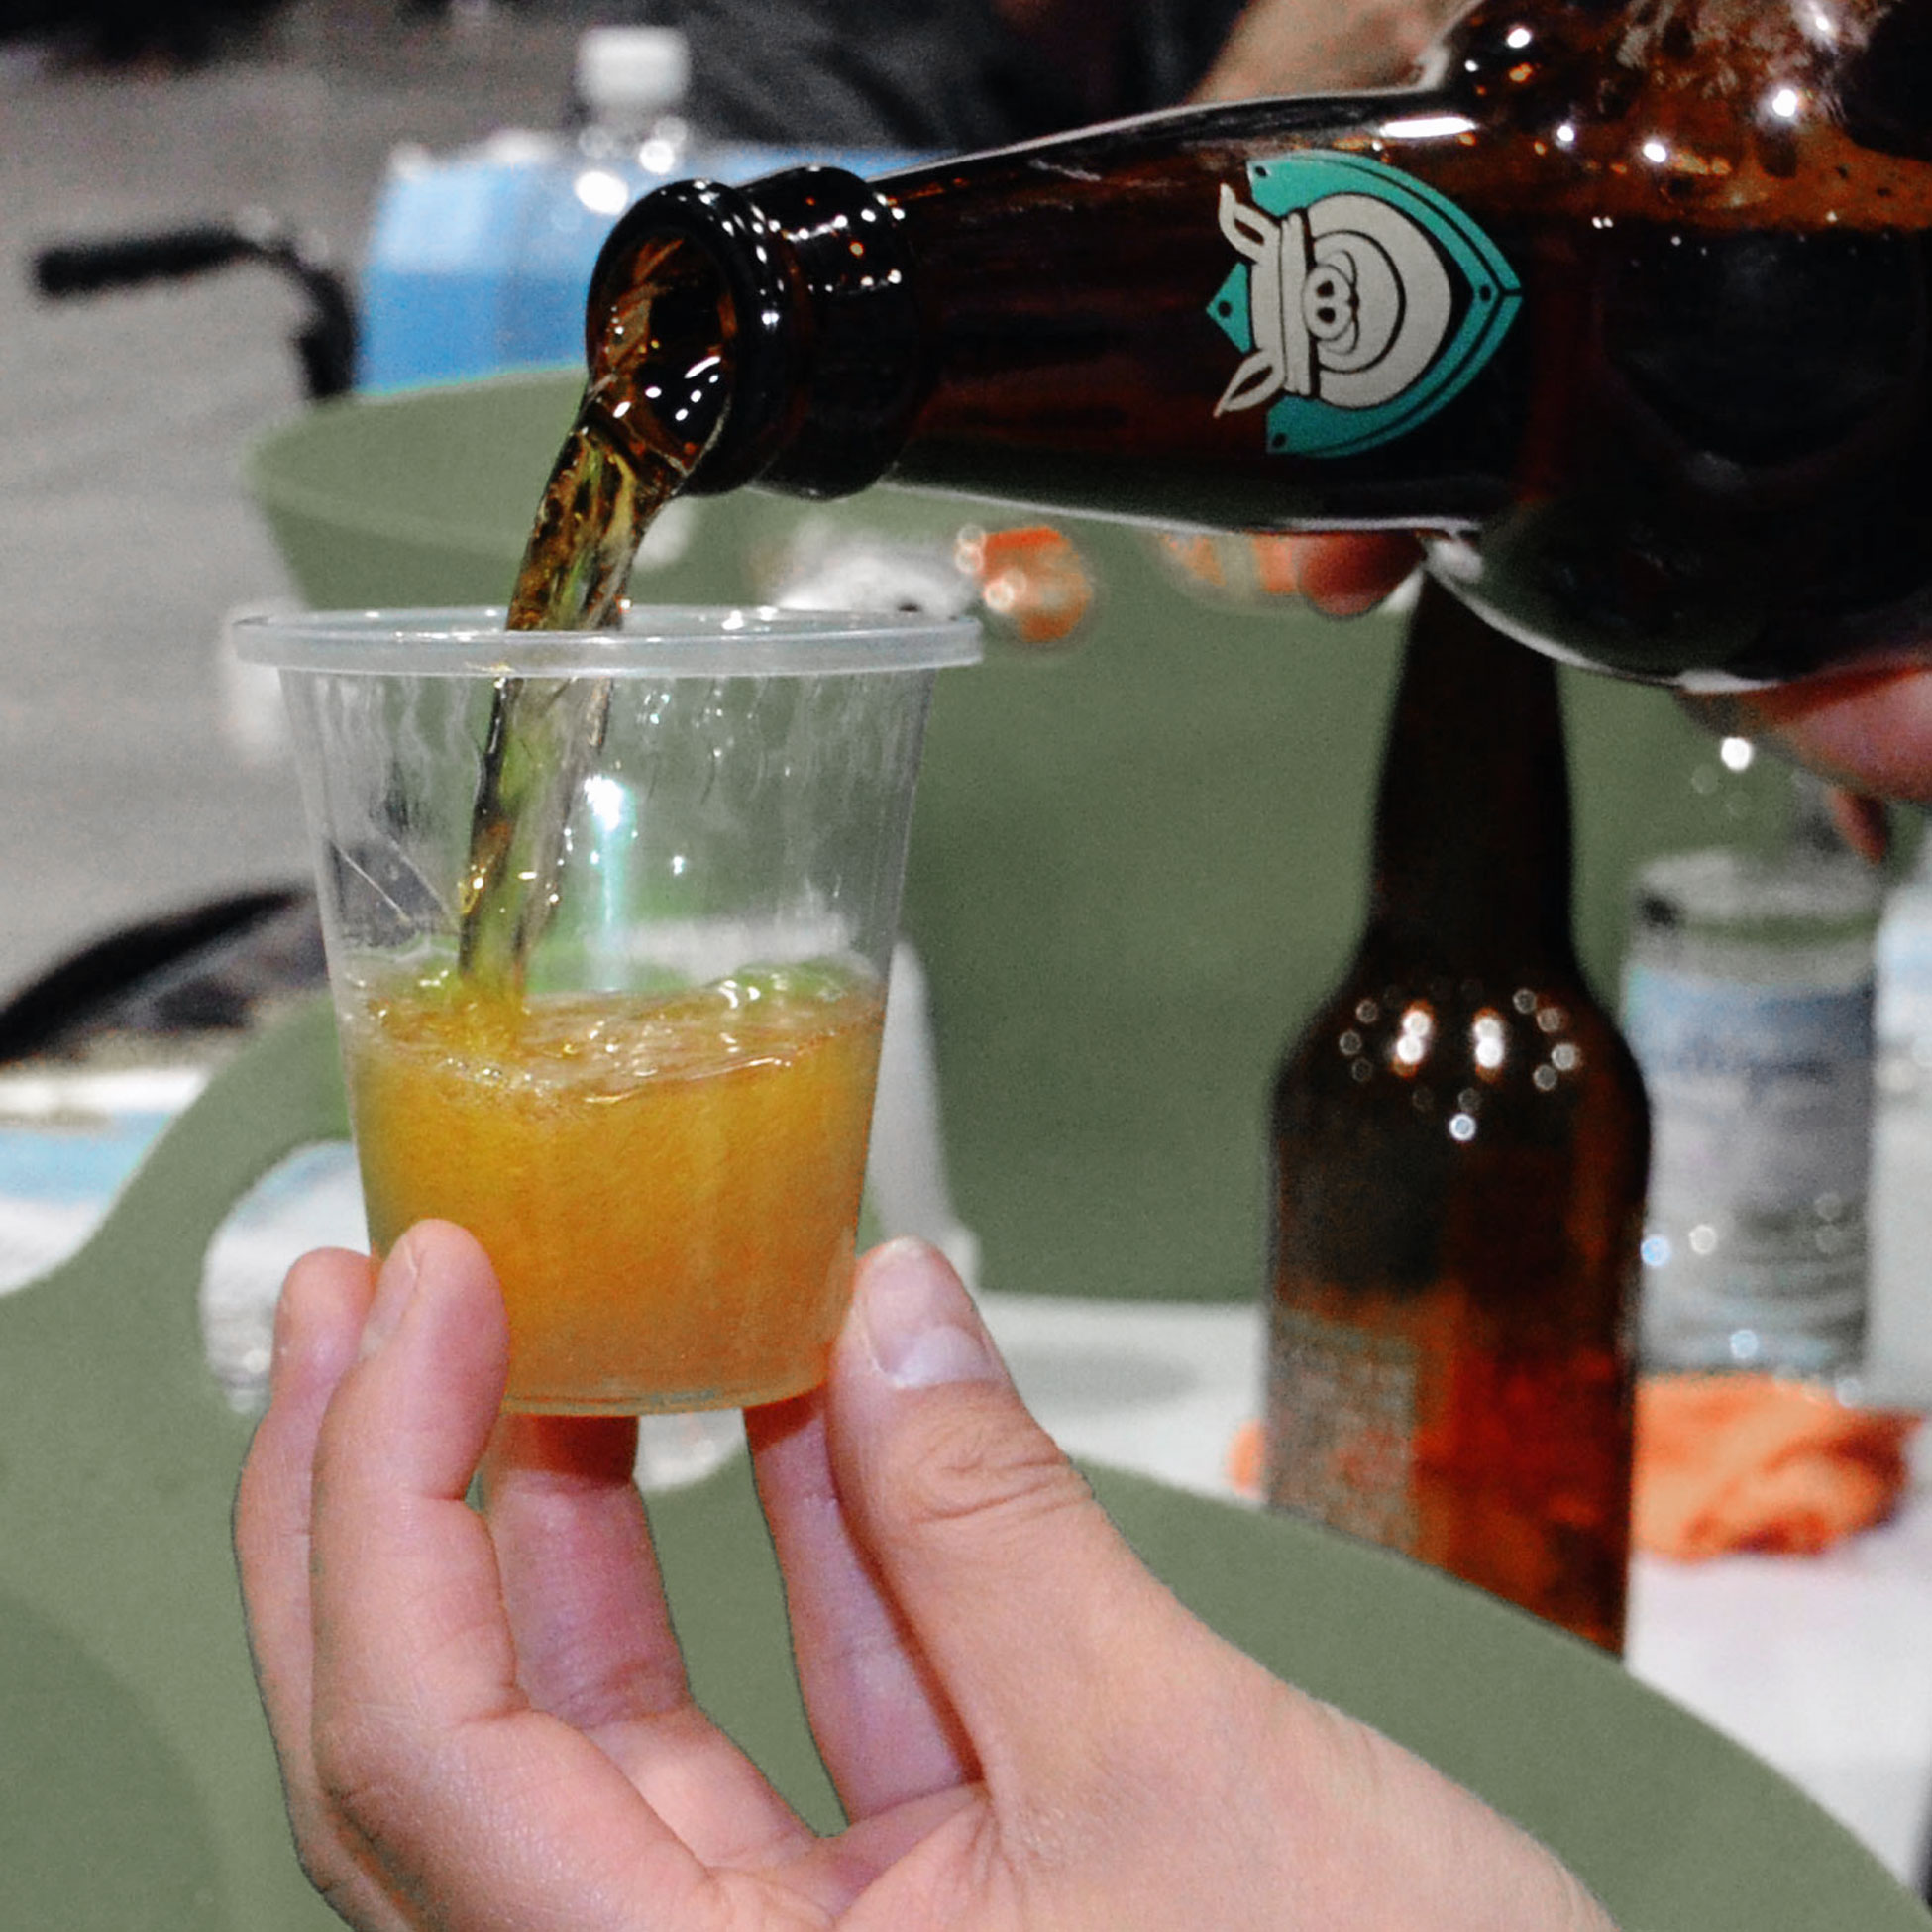 free-images-beer-bottle-pouring-stock-photography-commercial-event-sample